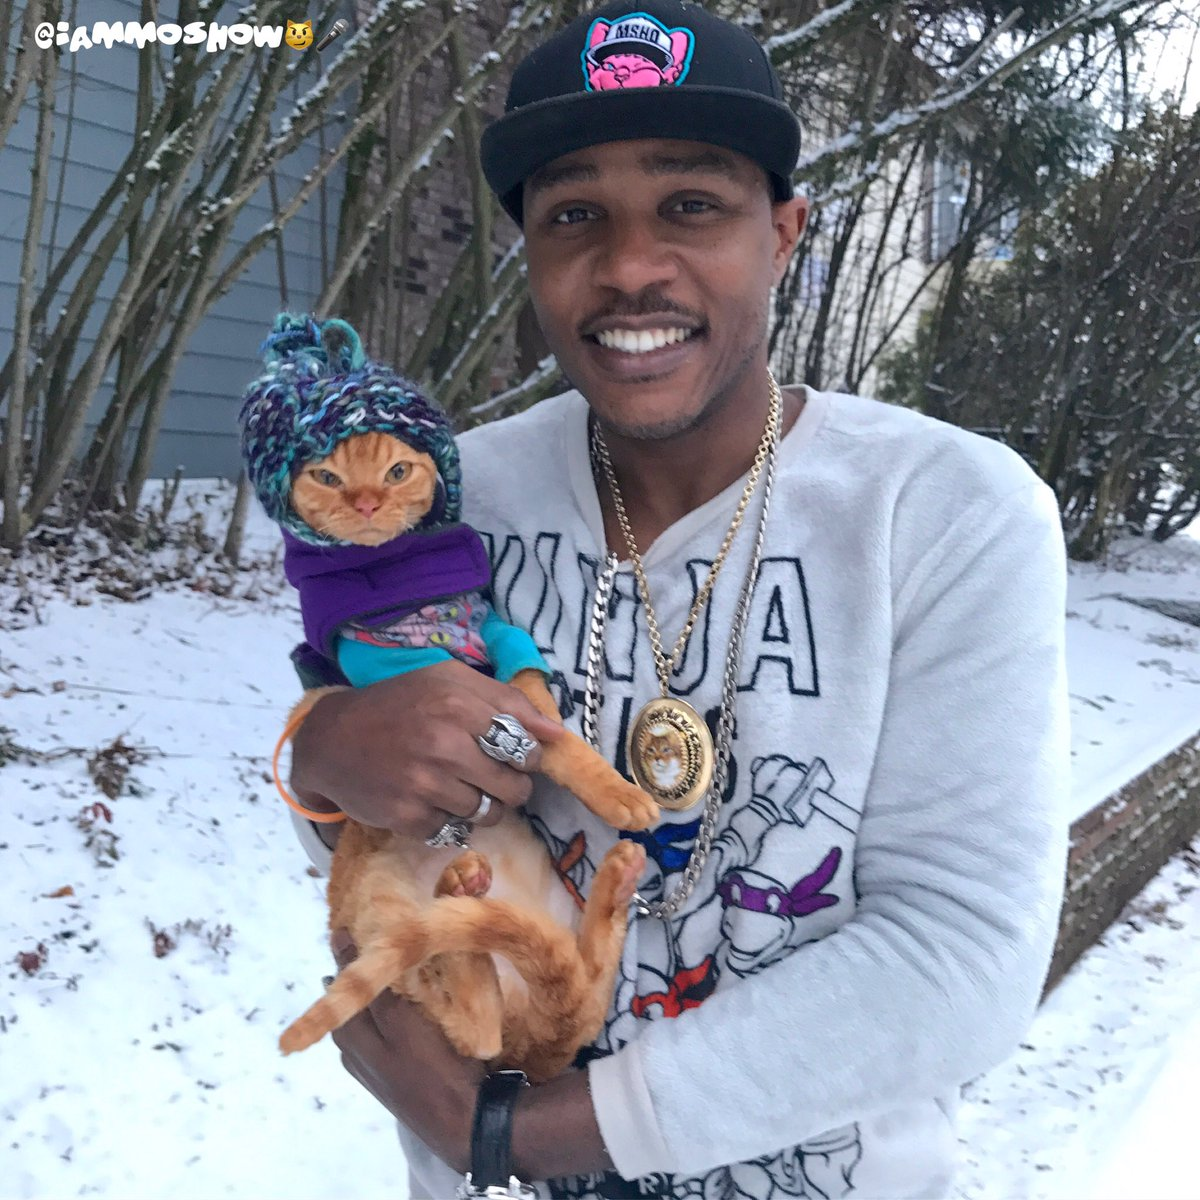 Find someone to keep you warm in the snow like the Cat Rapper keeps his cats  #kgwweather #PdxSnow<br>http://pic.twitter.com/i2KmMfJNNZ